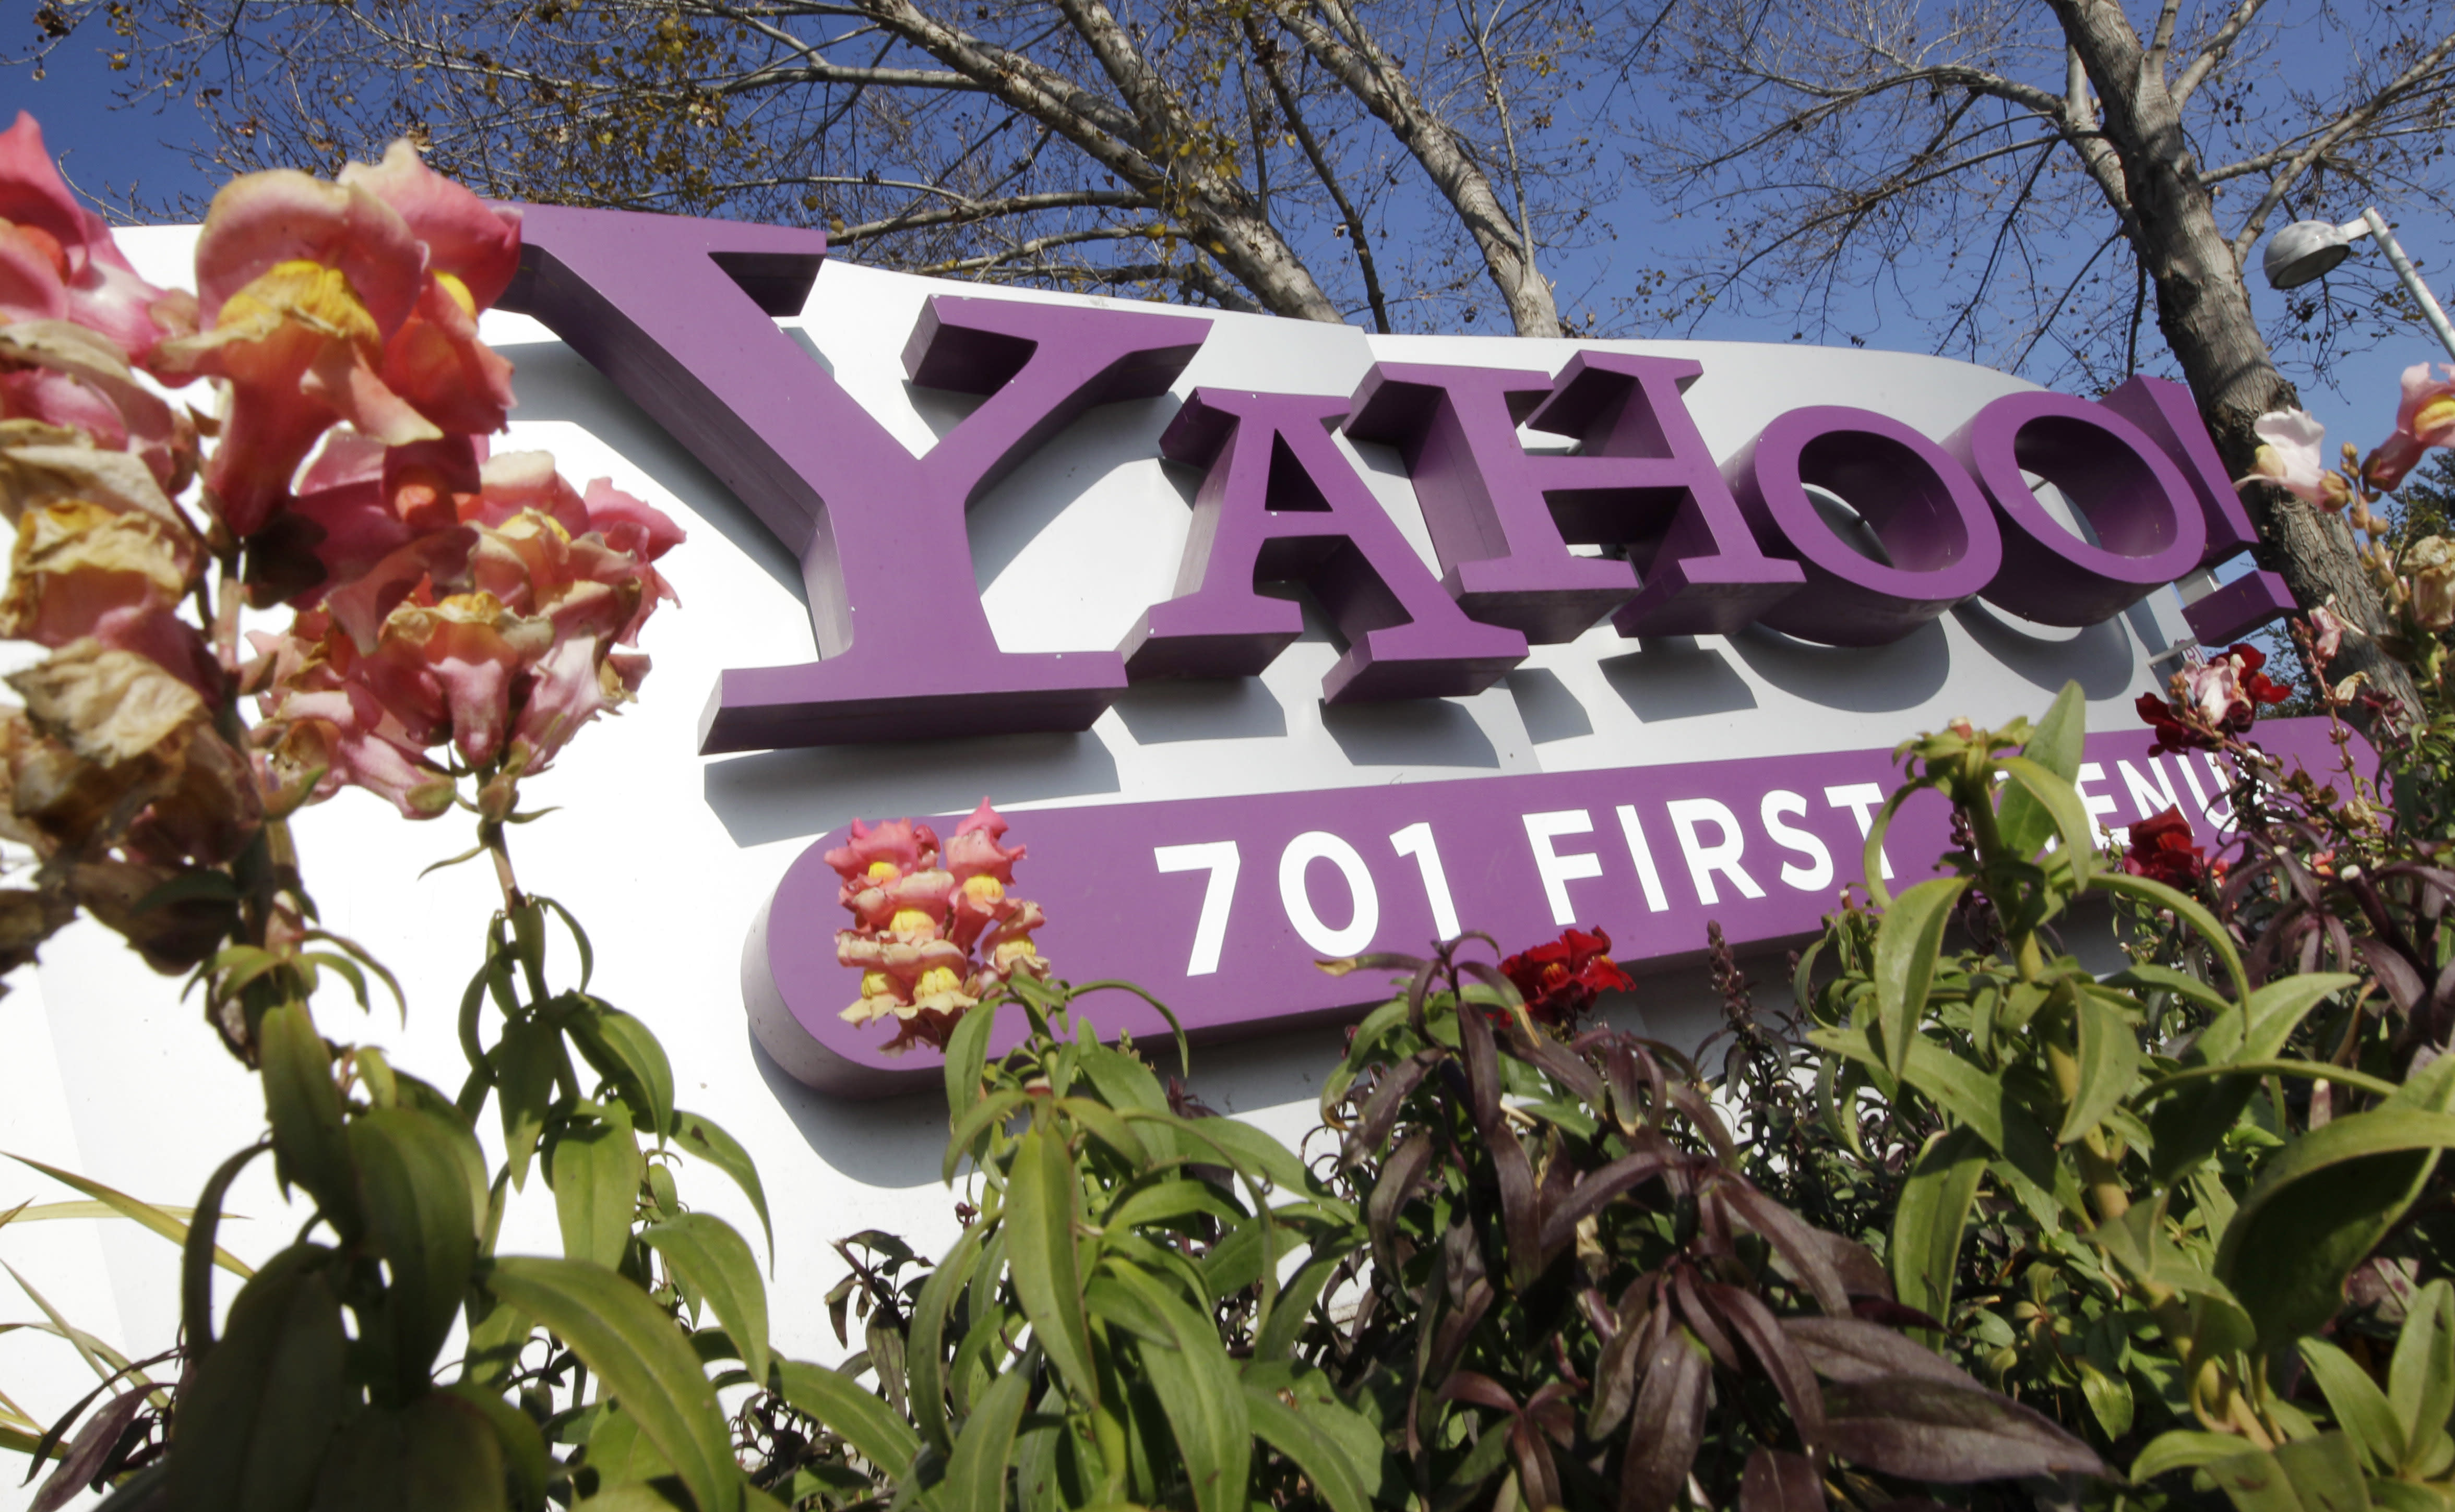 FILE - In this Jan. 4, 2012 file photo, the company logo is displayed at Yahoo headquarters in Sunnyvale, Calif. One of Britain's youngest Internet entrepreneurs has hit the jackpot after selling his top-selling mobile application Summly to search giant Yahoo the company announced Monday March 25, 2012. (AP Photo/Paul Sakuma, File)